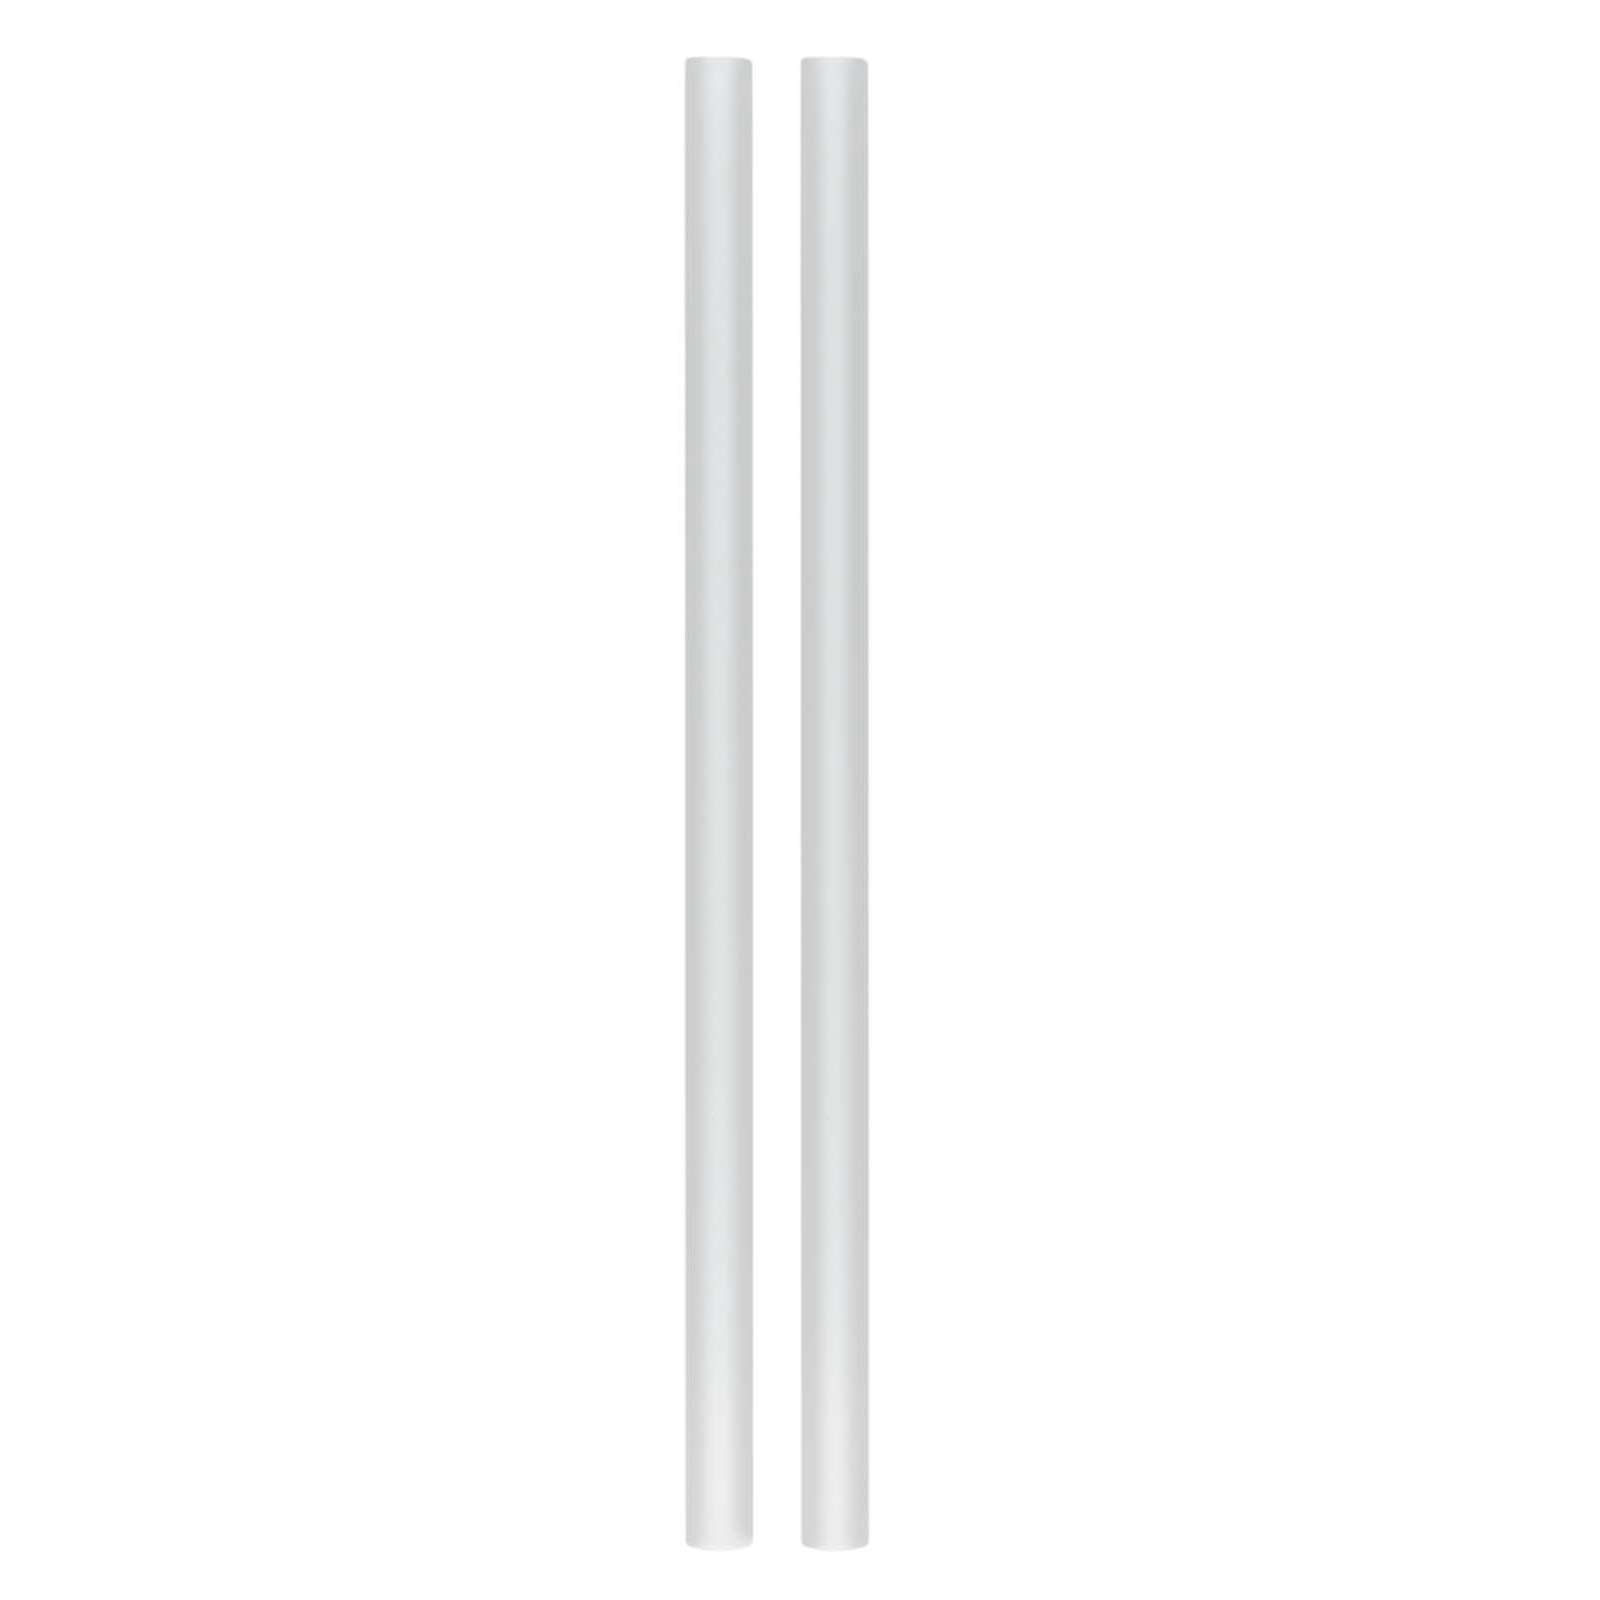 Replacement Straw for Atlantic Bottle 4.9 inch (2-pack)